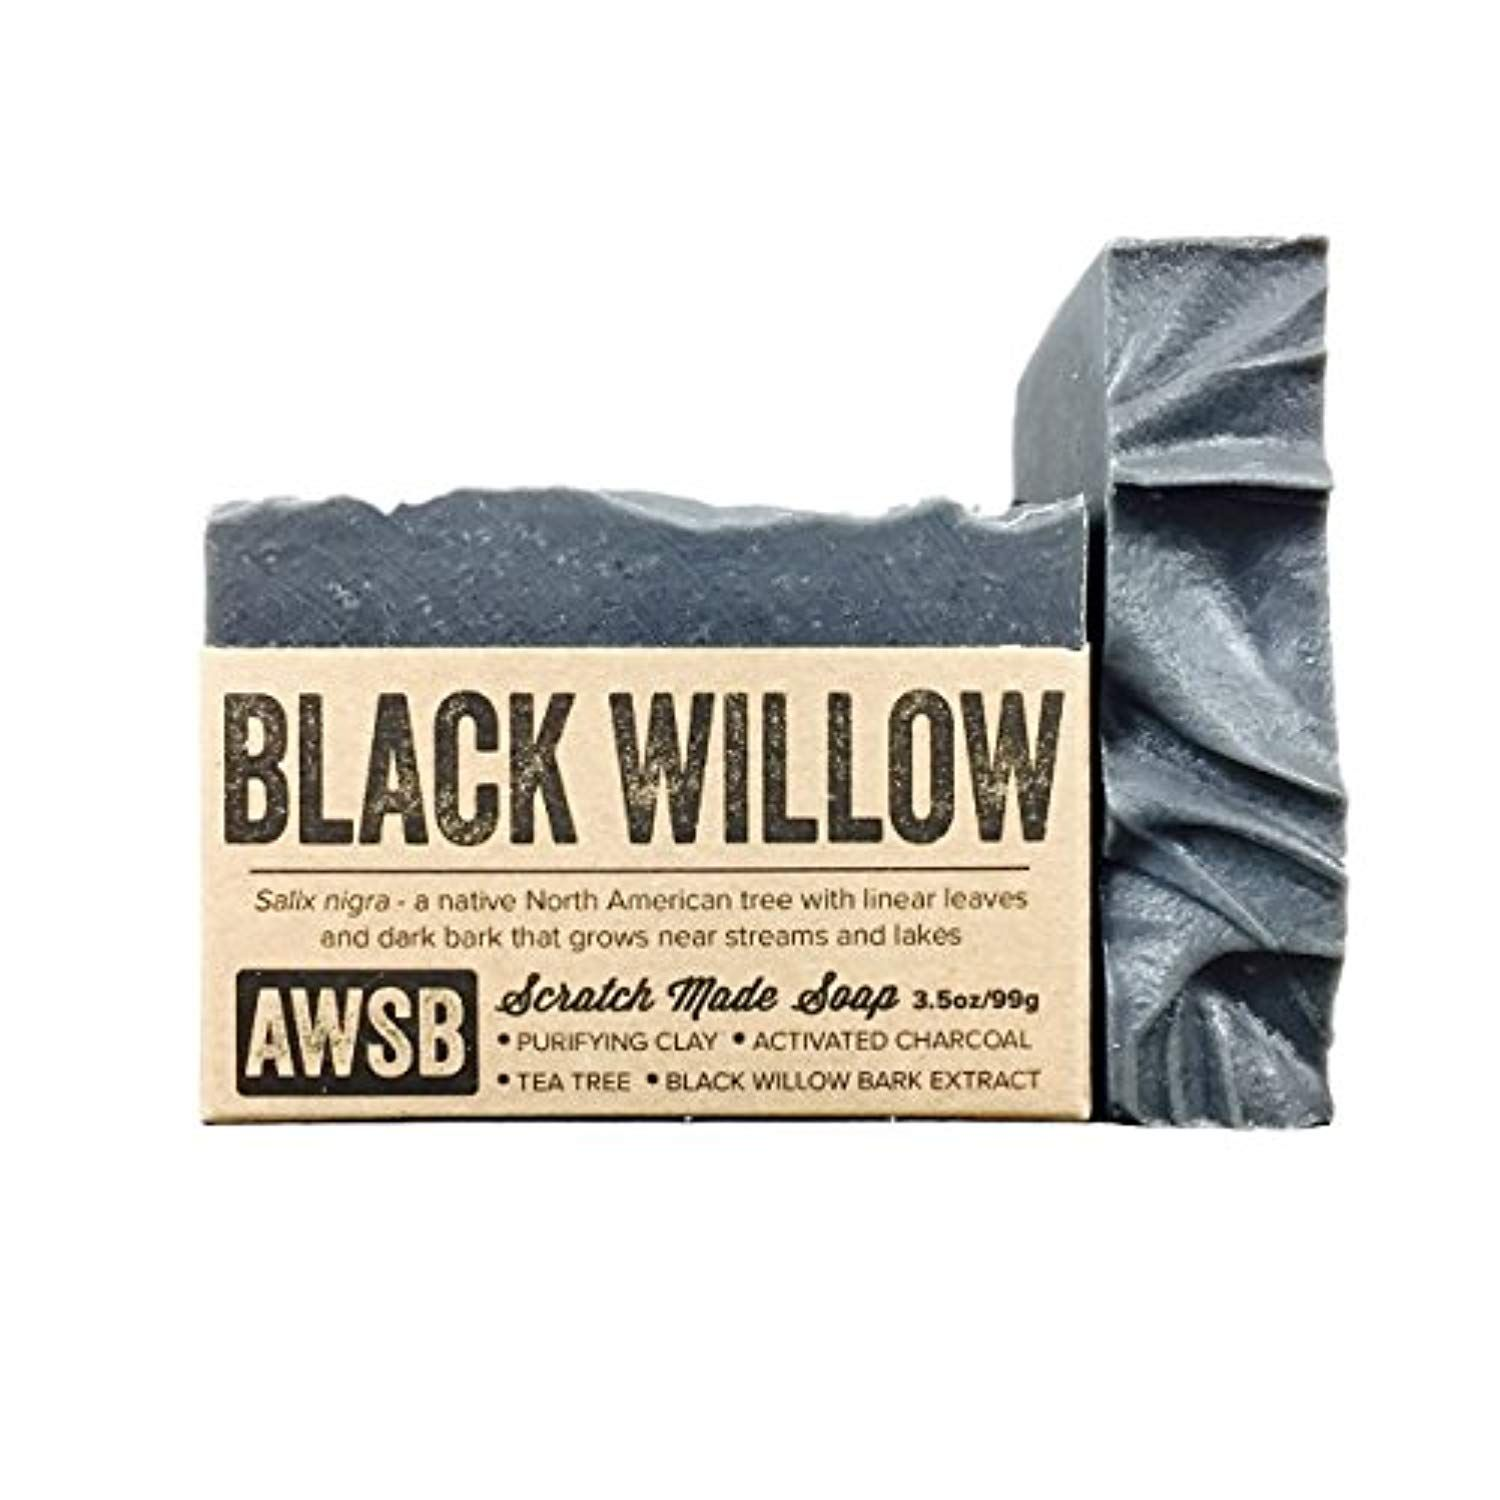 Black Willow Bar Soap for Acne with Activated Charcoal